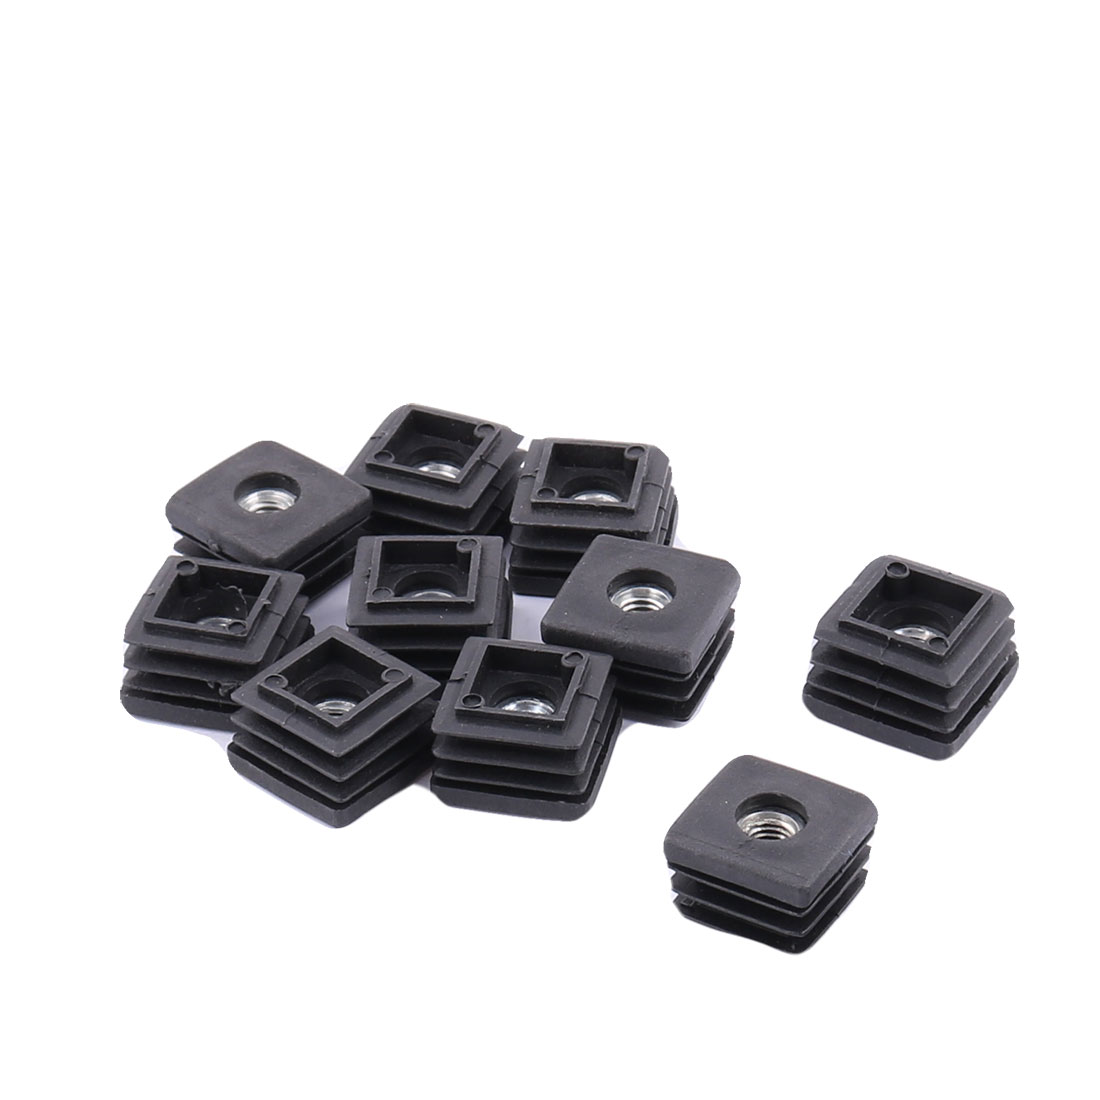 Furniture Table Chair Square Shaped End Cap Tube Insert Black 25mm x 25mm 10pcs